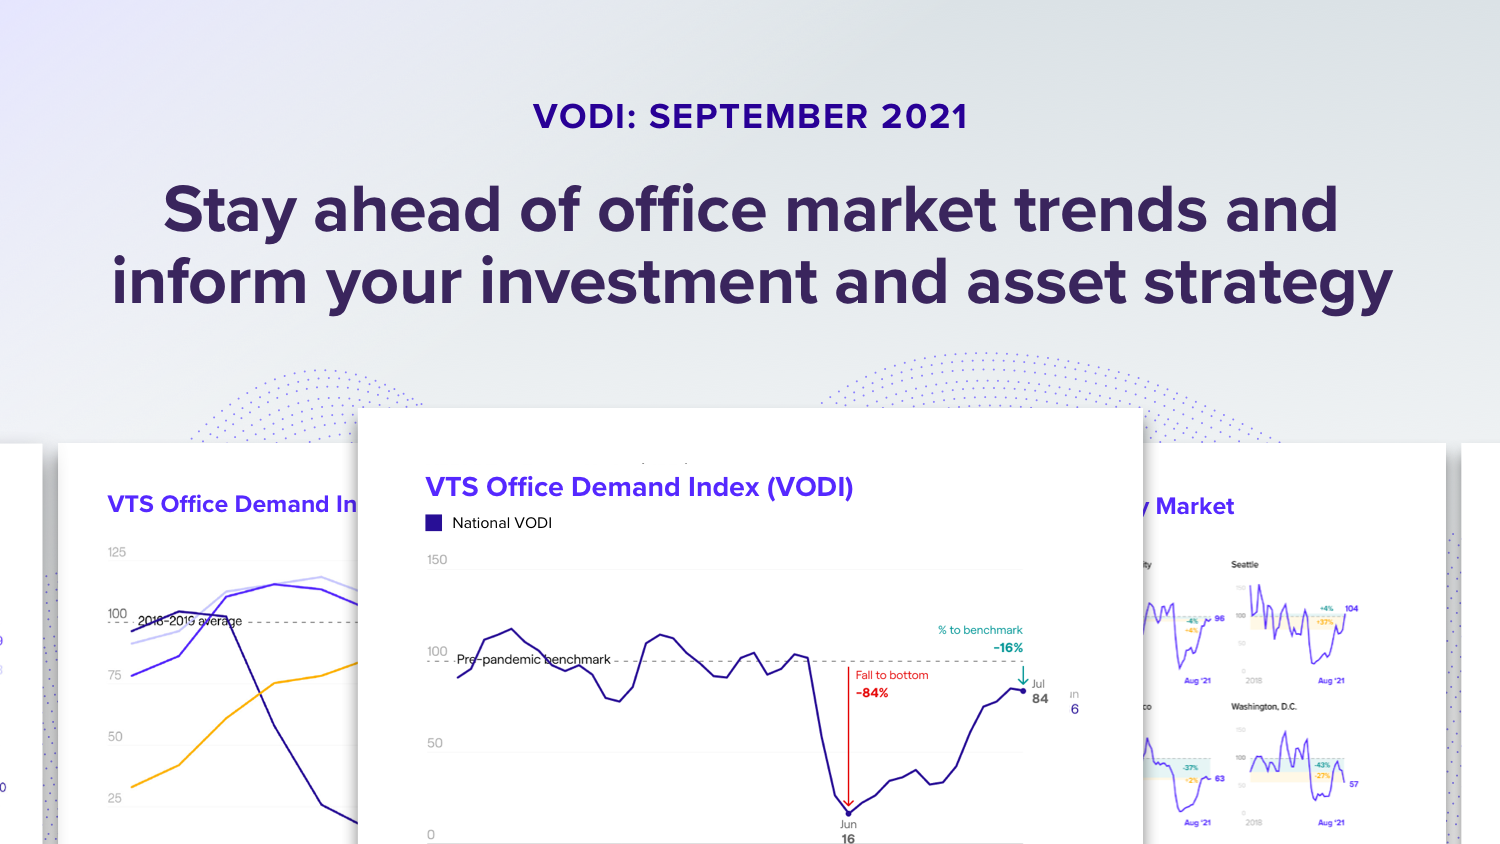 New Demand for Office Space Highest Since Pandemic Onset